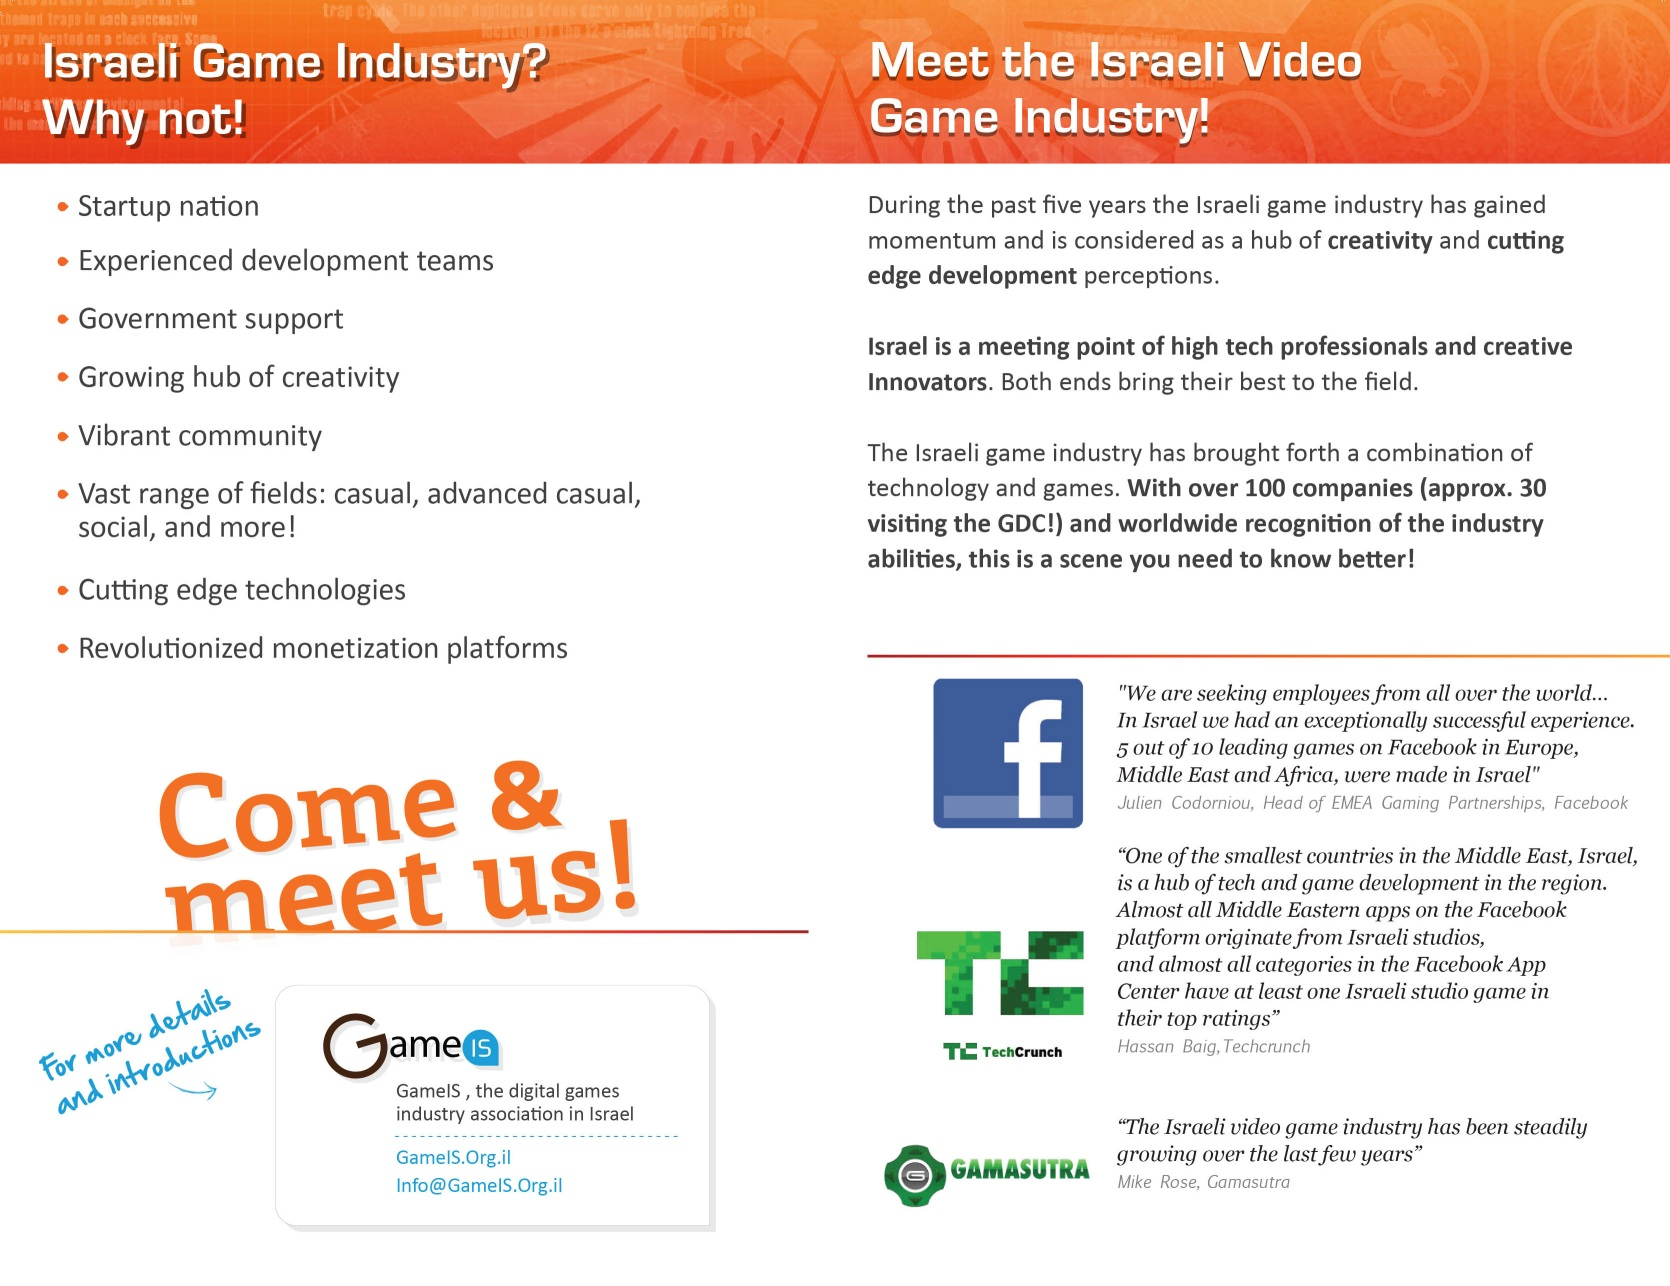 Israeli Video Game Industry - click to enlarge